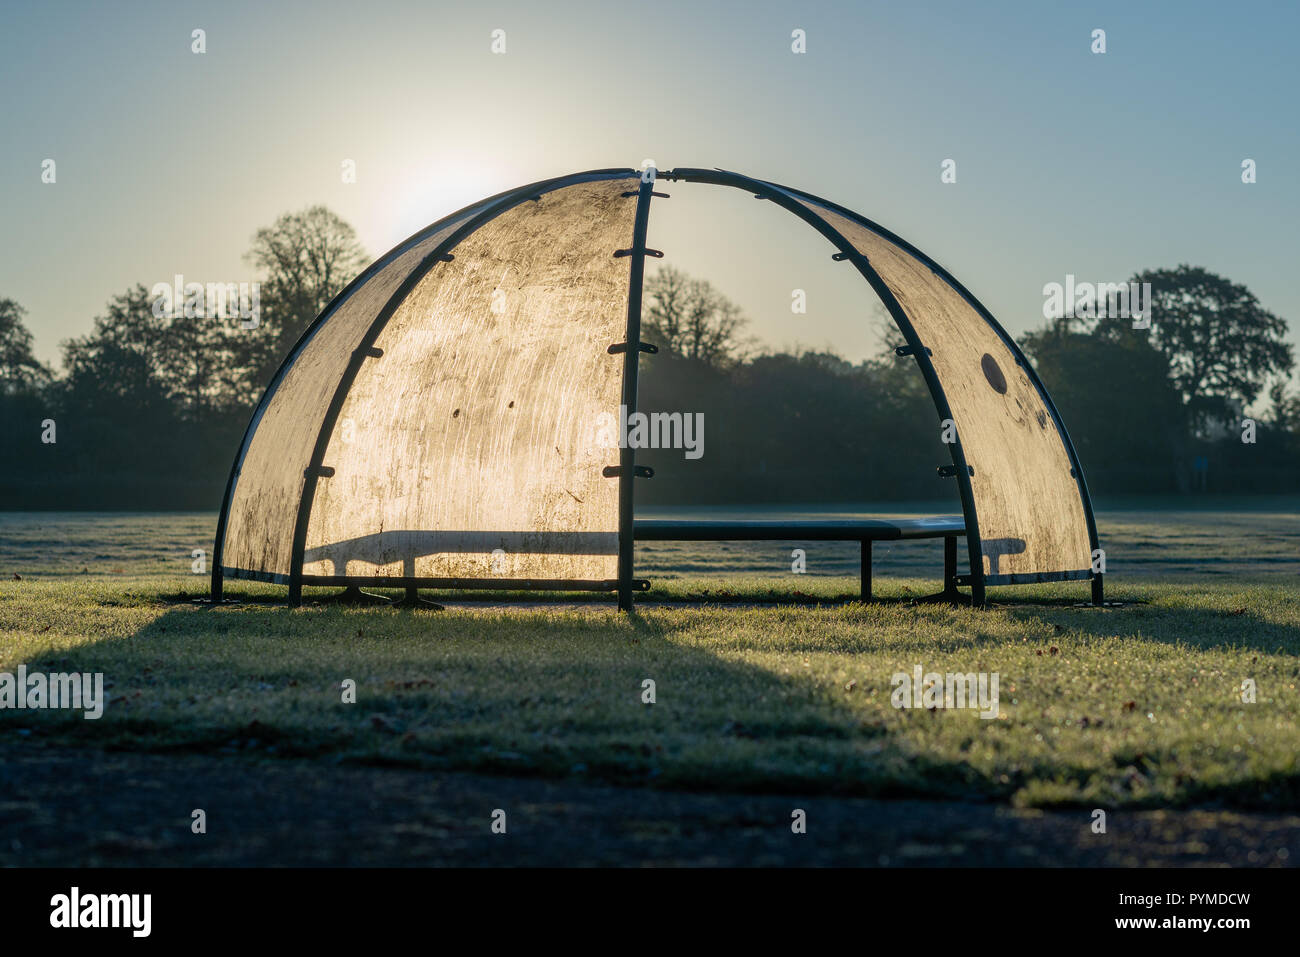 Dome shaped seat cover in a sports ground on a frosty morning, backlit by the rising sun. - Stock Image